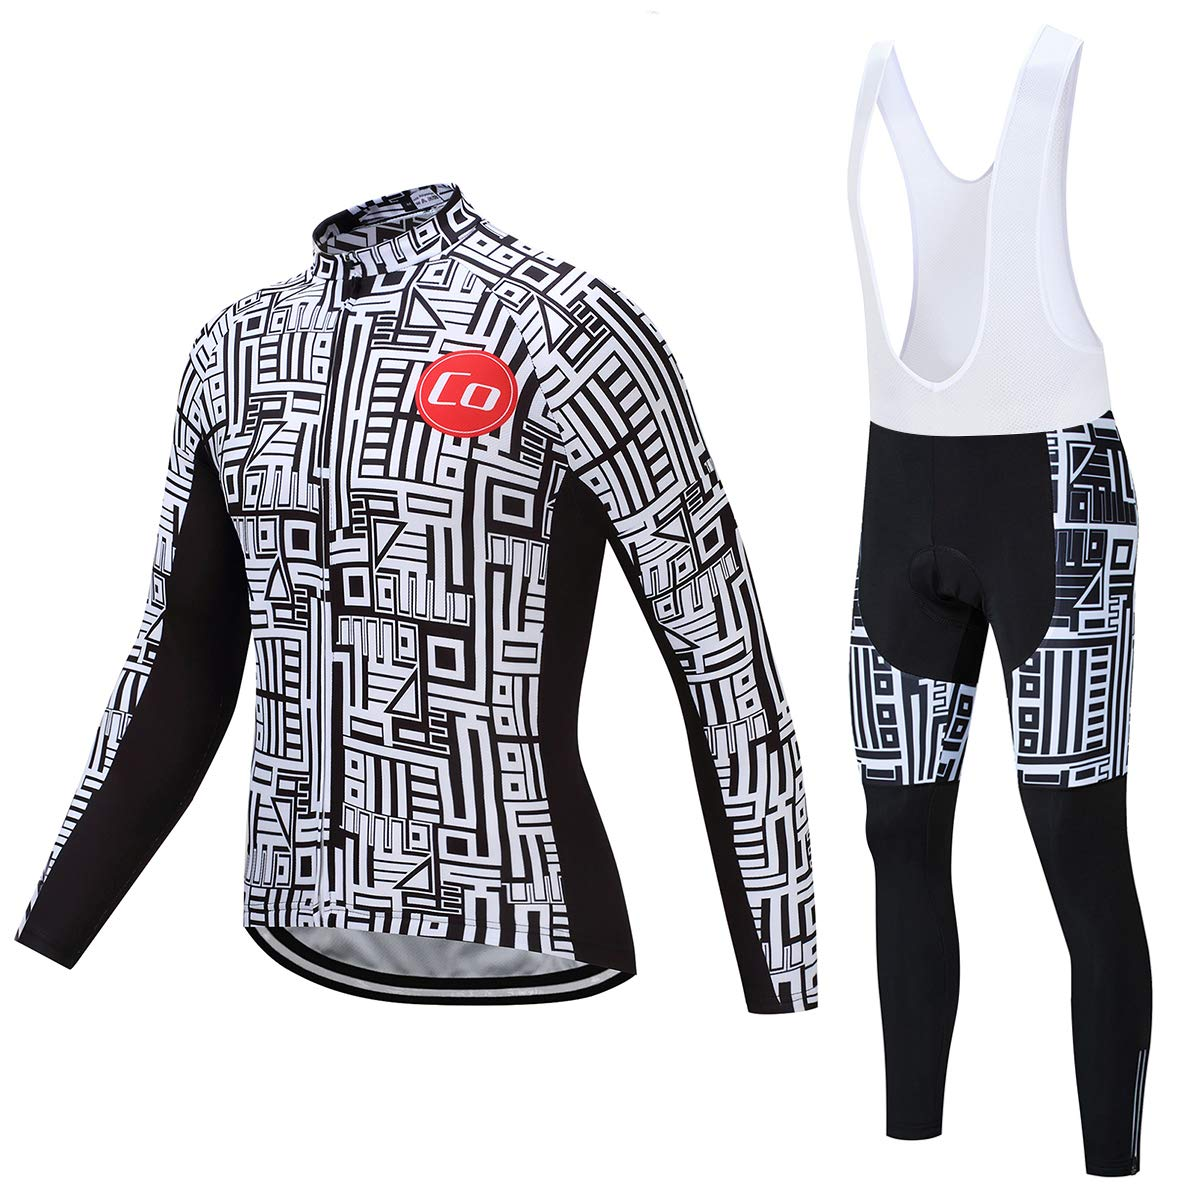 Coconut Ropamo Men's Cycling Jersey Suit Long Sleeve Road Bike Jersey Cycling Sets Tights with Padded (3XL, White&Black) by Coconut Ropamo